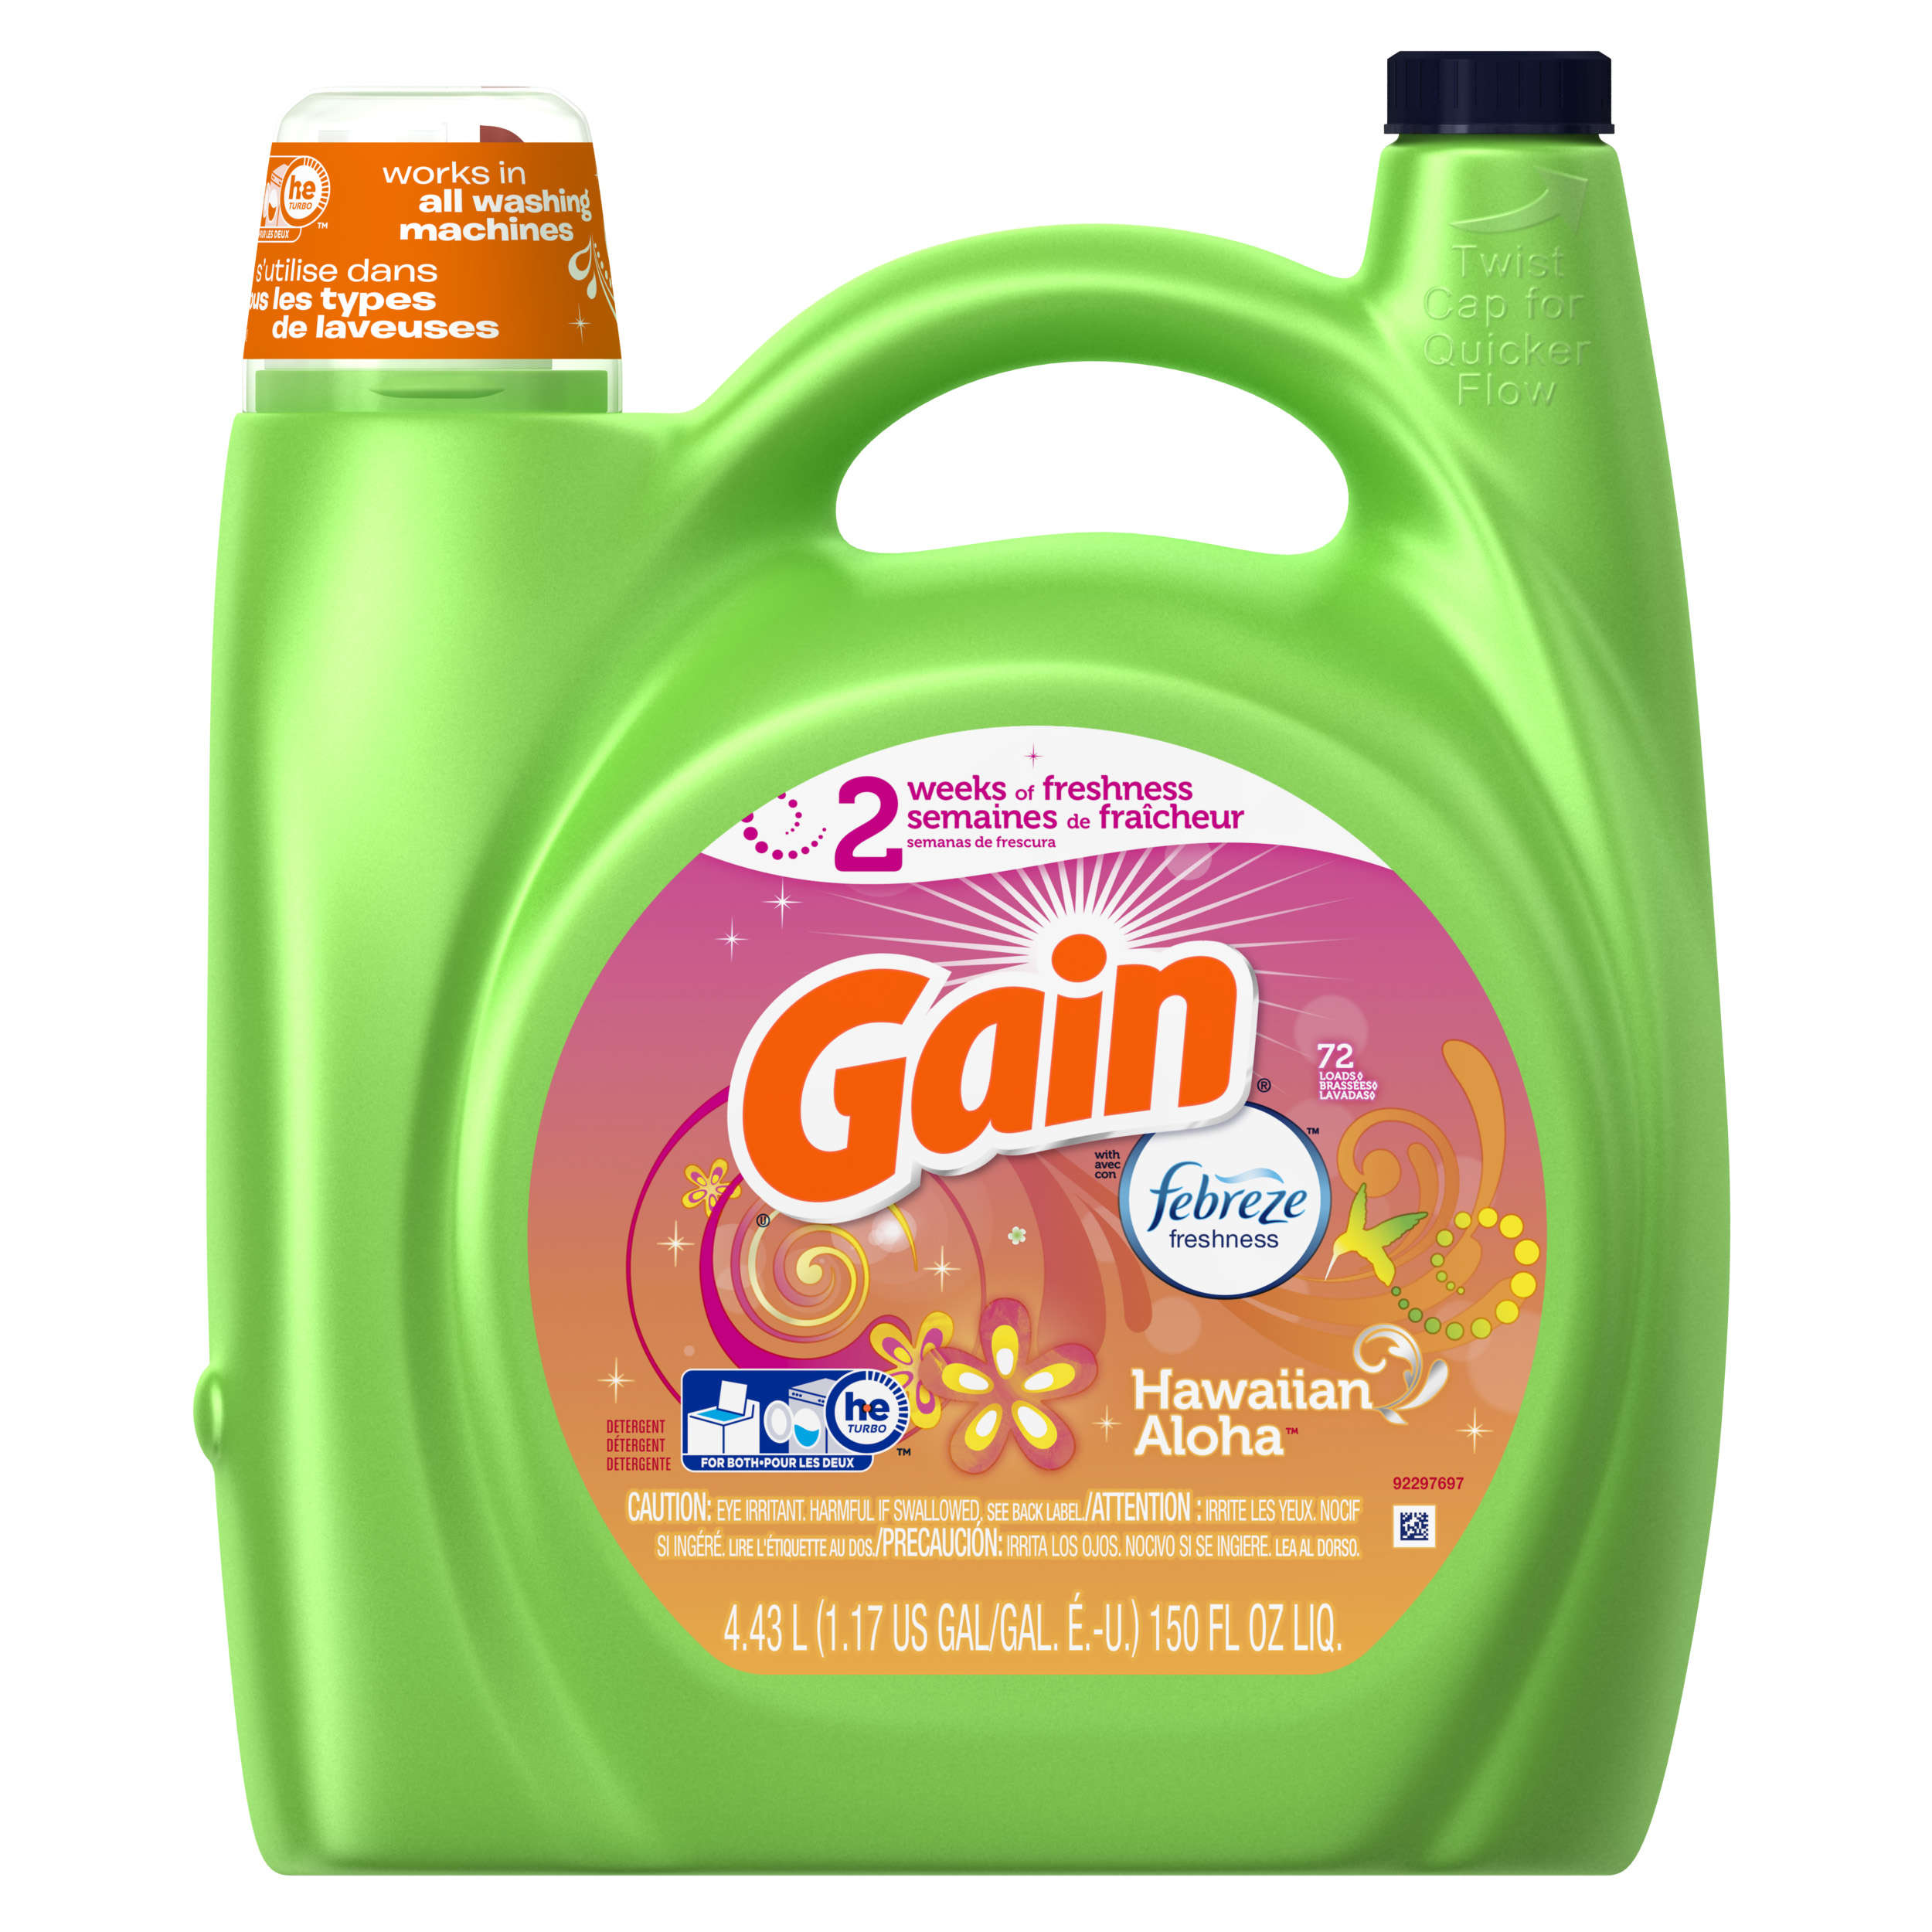 Gain Liquid Laundry Detergent with Febreze Freshness, Hawaiian Aloha Scent, 72 loads, 150oz